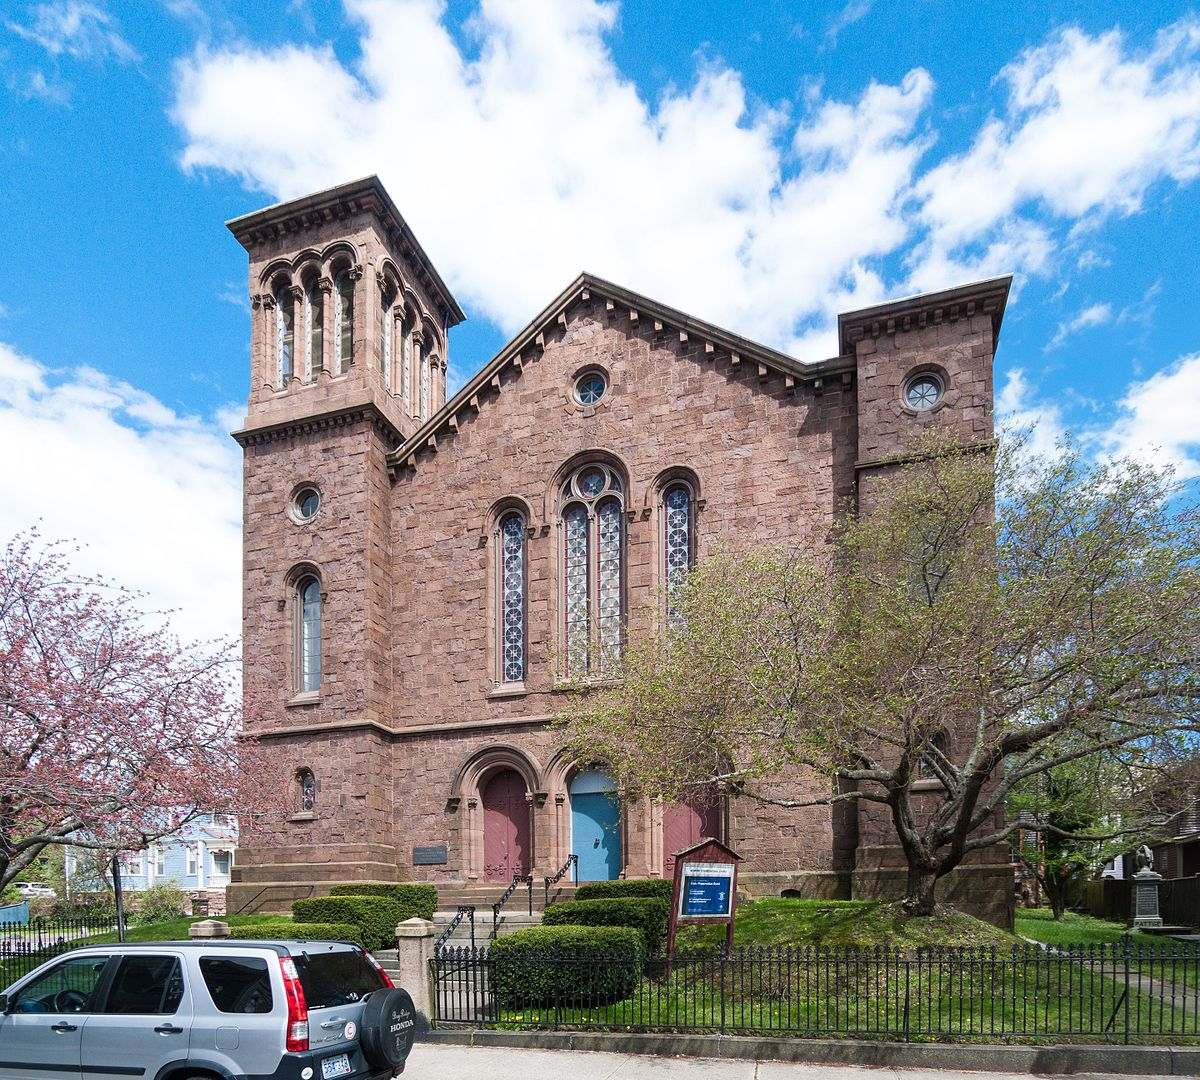 The 1857 United Congregational Church with its roofless towers.